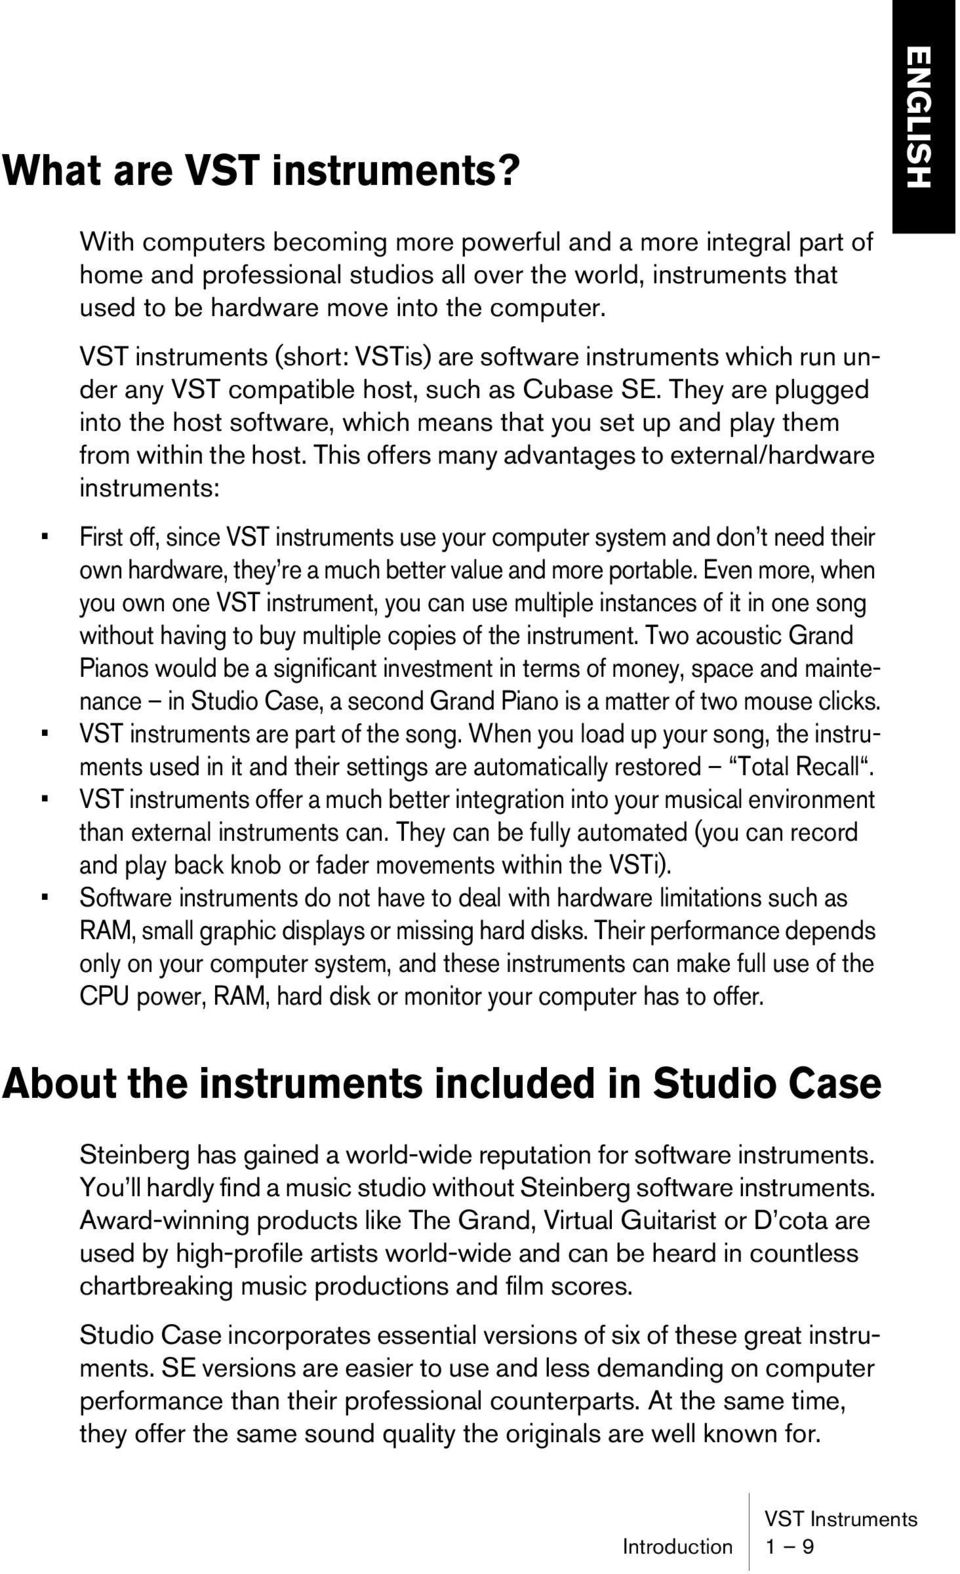 VST instruments (short: VSTis) are software instruments which run under any VST compatible host, such as Cubase SE.